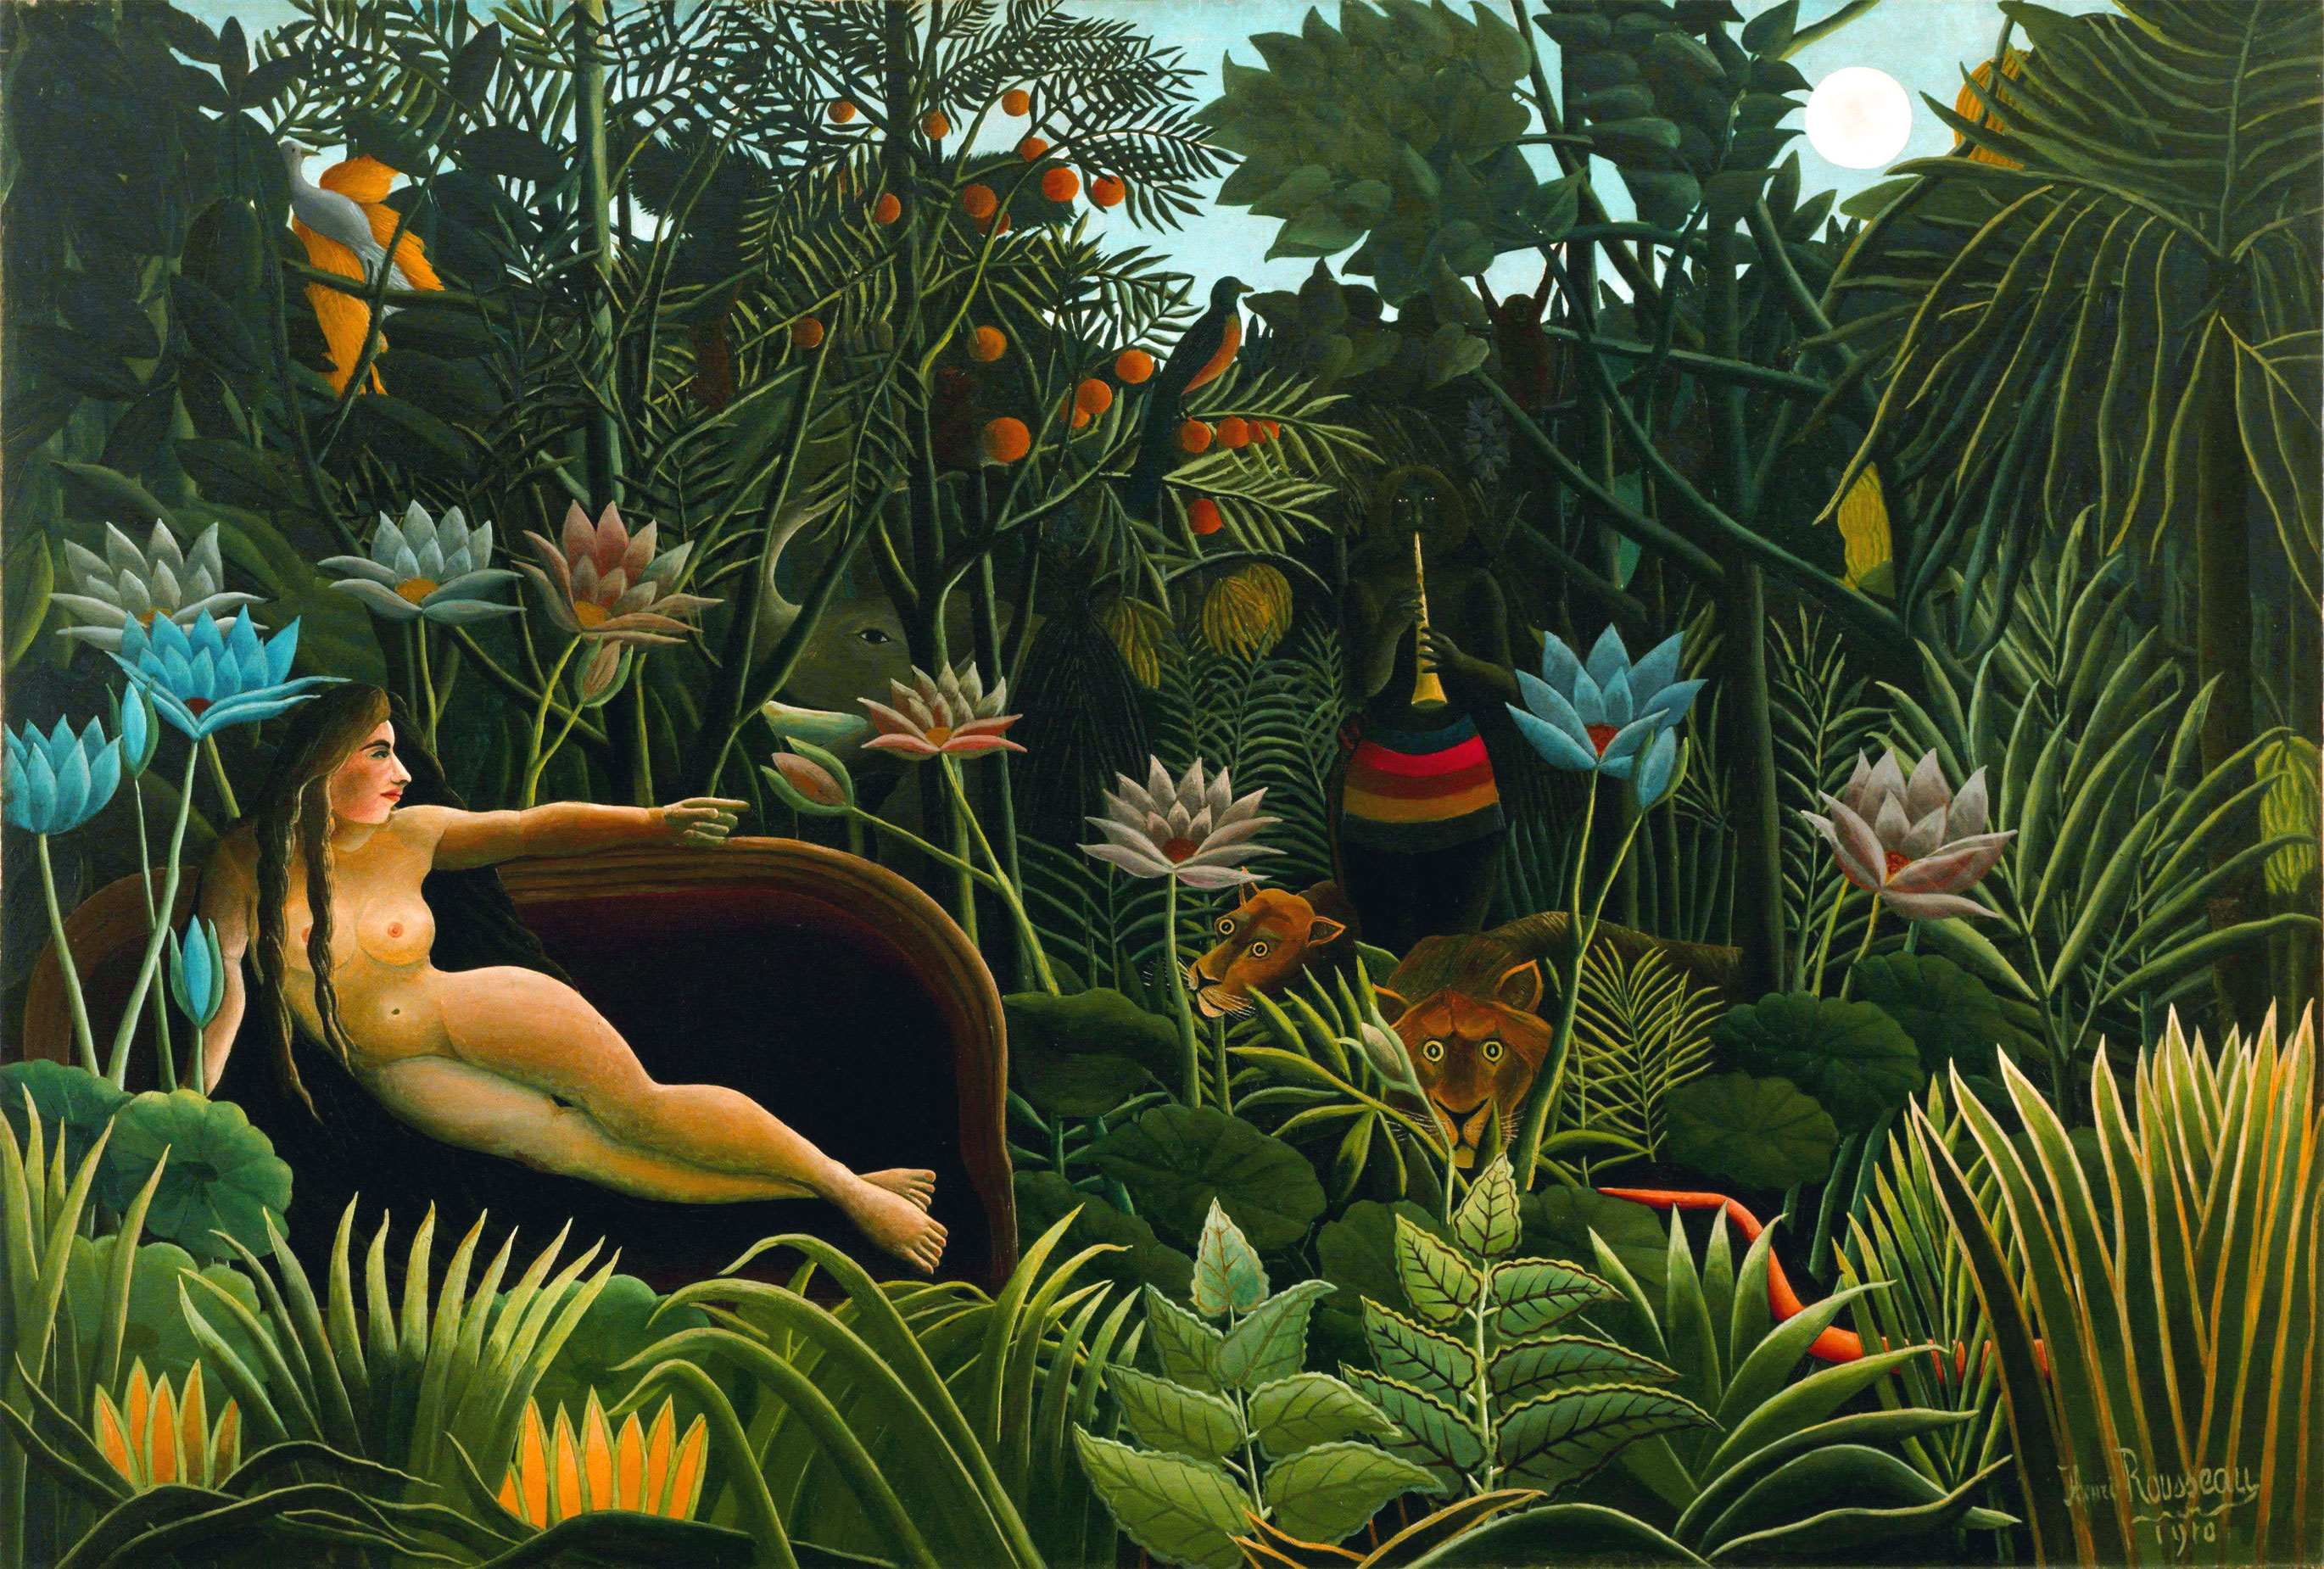 Il-sogno-The-dream-Le-reve-El-sueno-Henri-Rousseau-1910